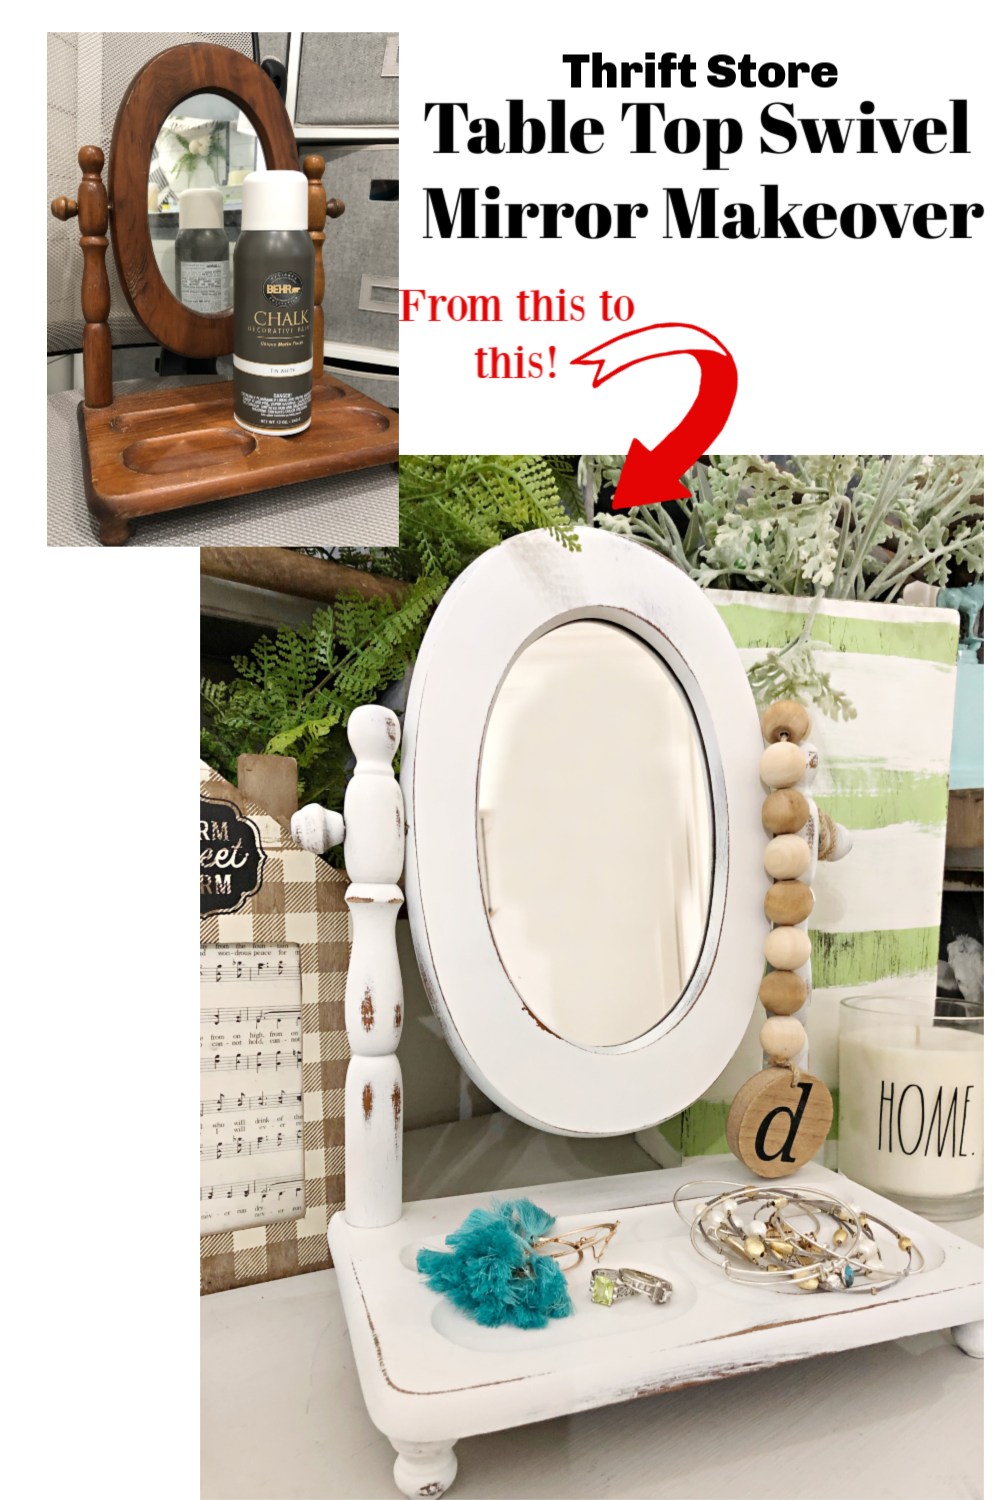 Thrift Store Table top mirror makeover